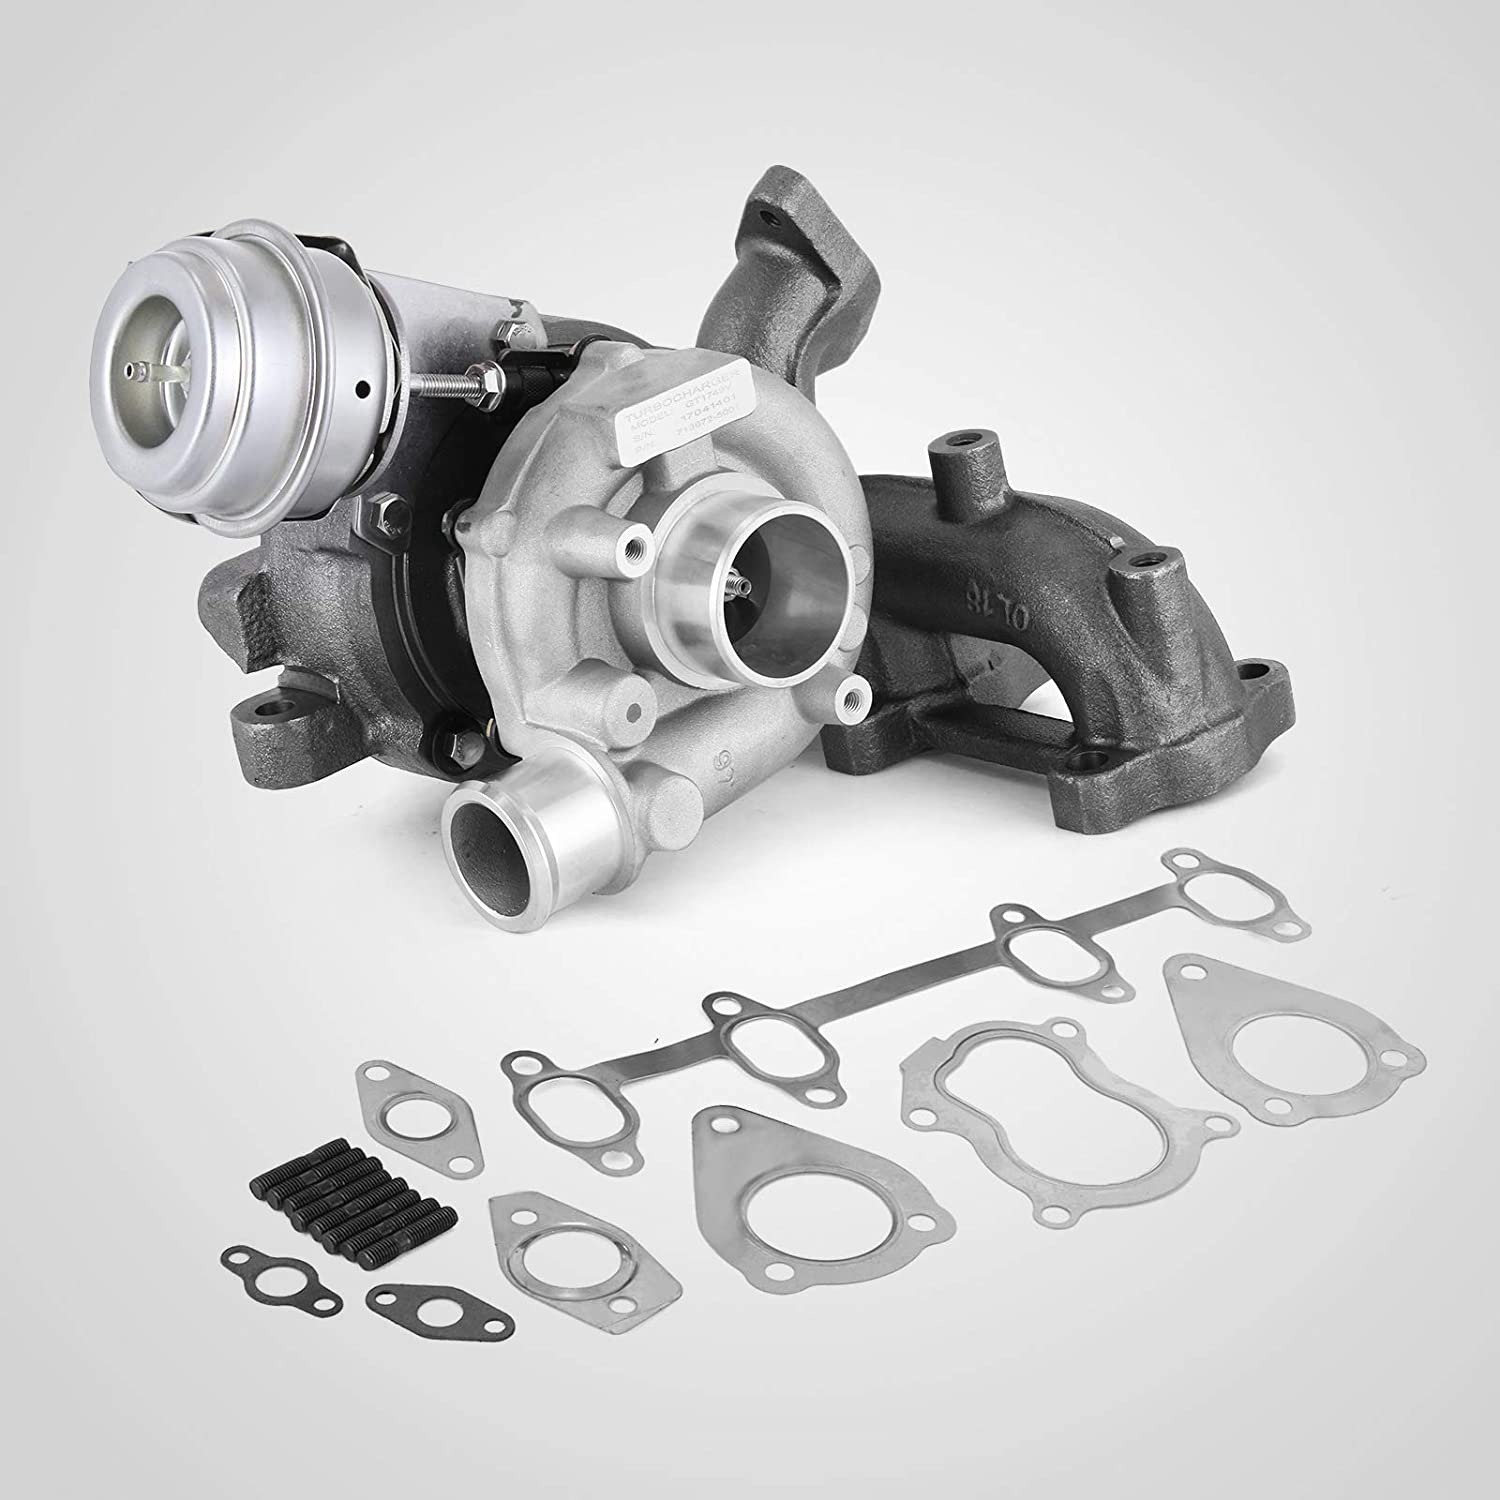 Amazon.com: Mophorn GT1749V Turbo Kit With Top Quality Turbocharger & Gaskets Fits VW 1.9L TDI ALH: Automotive